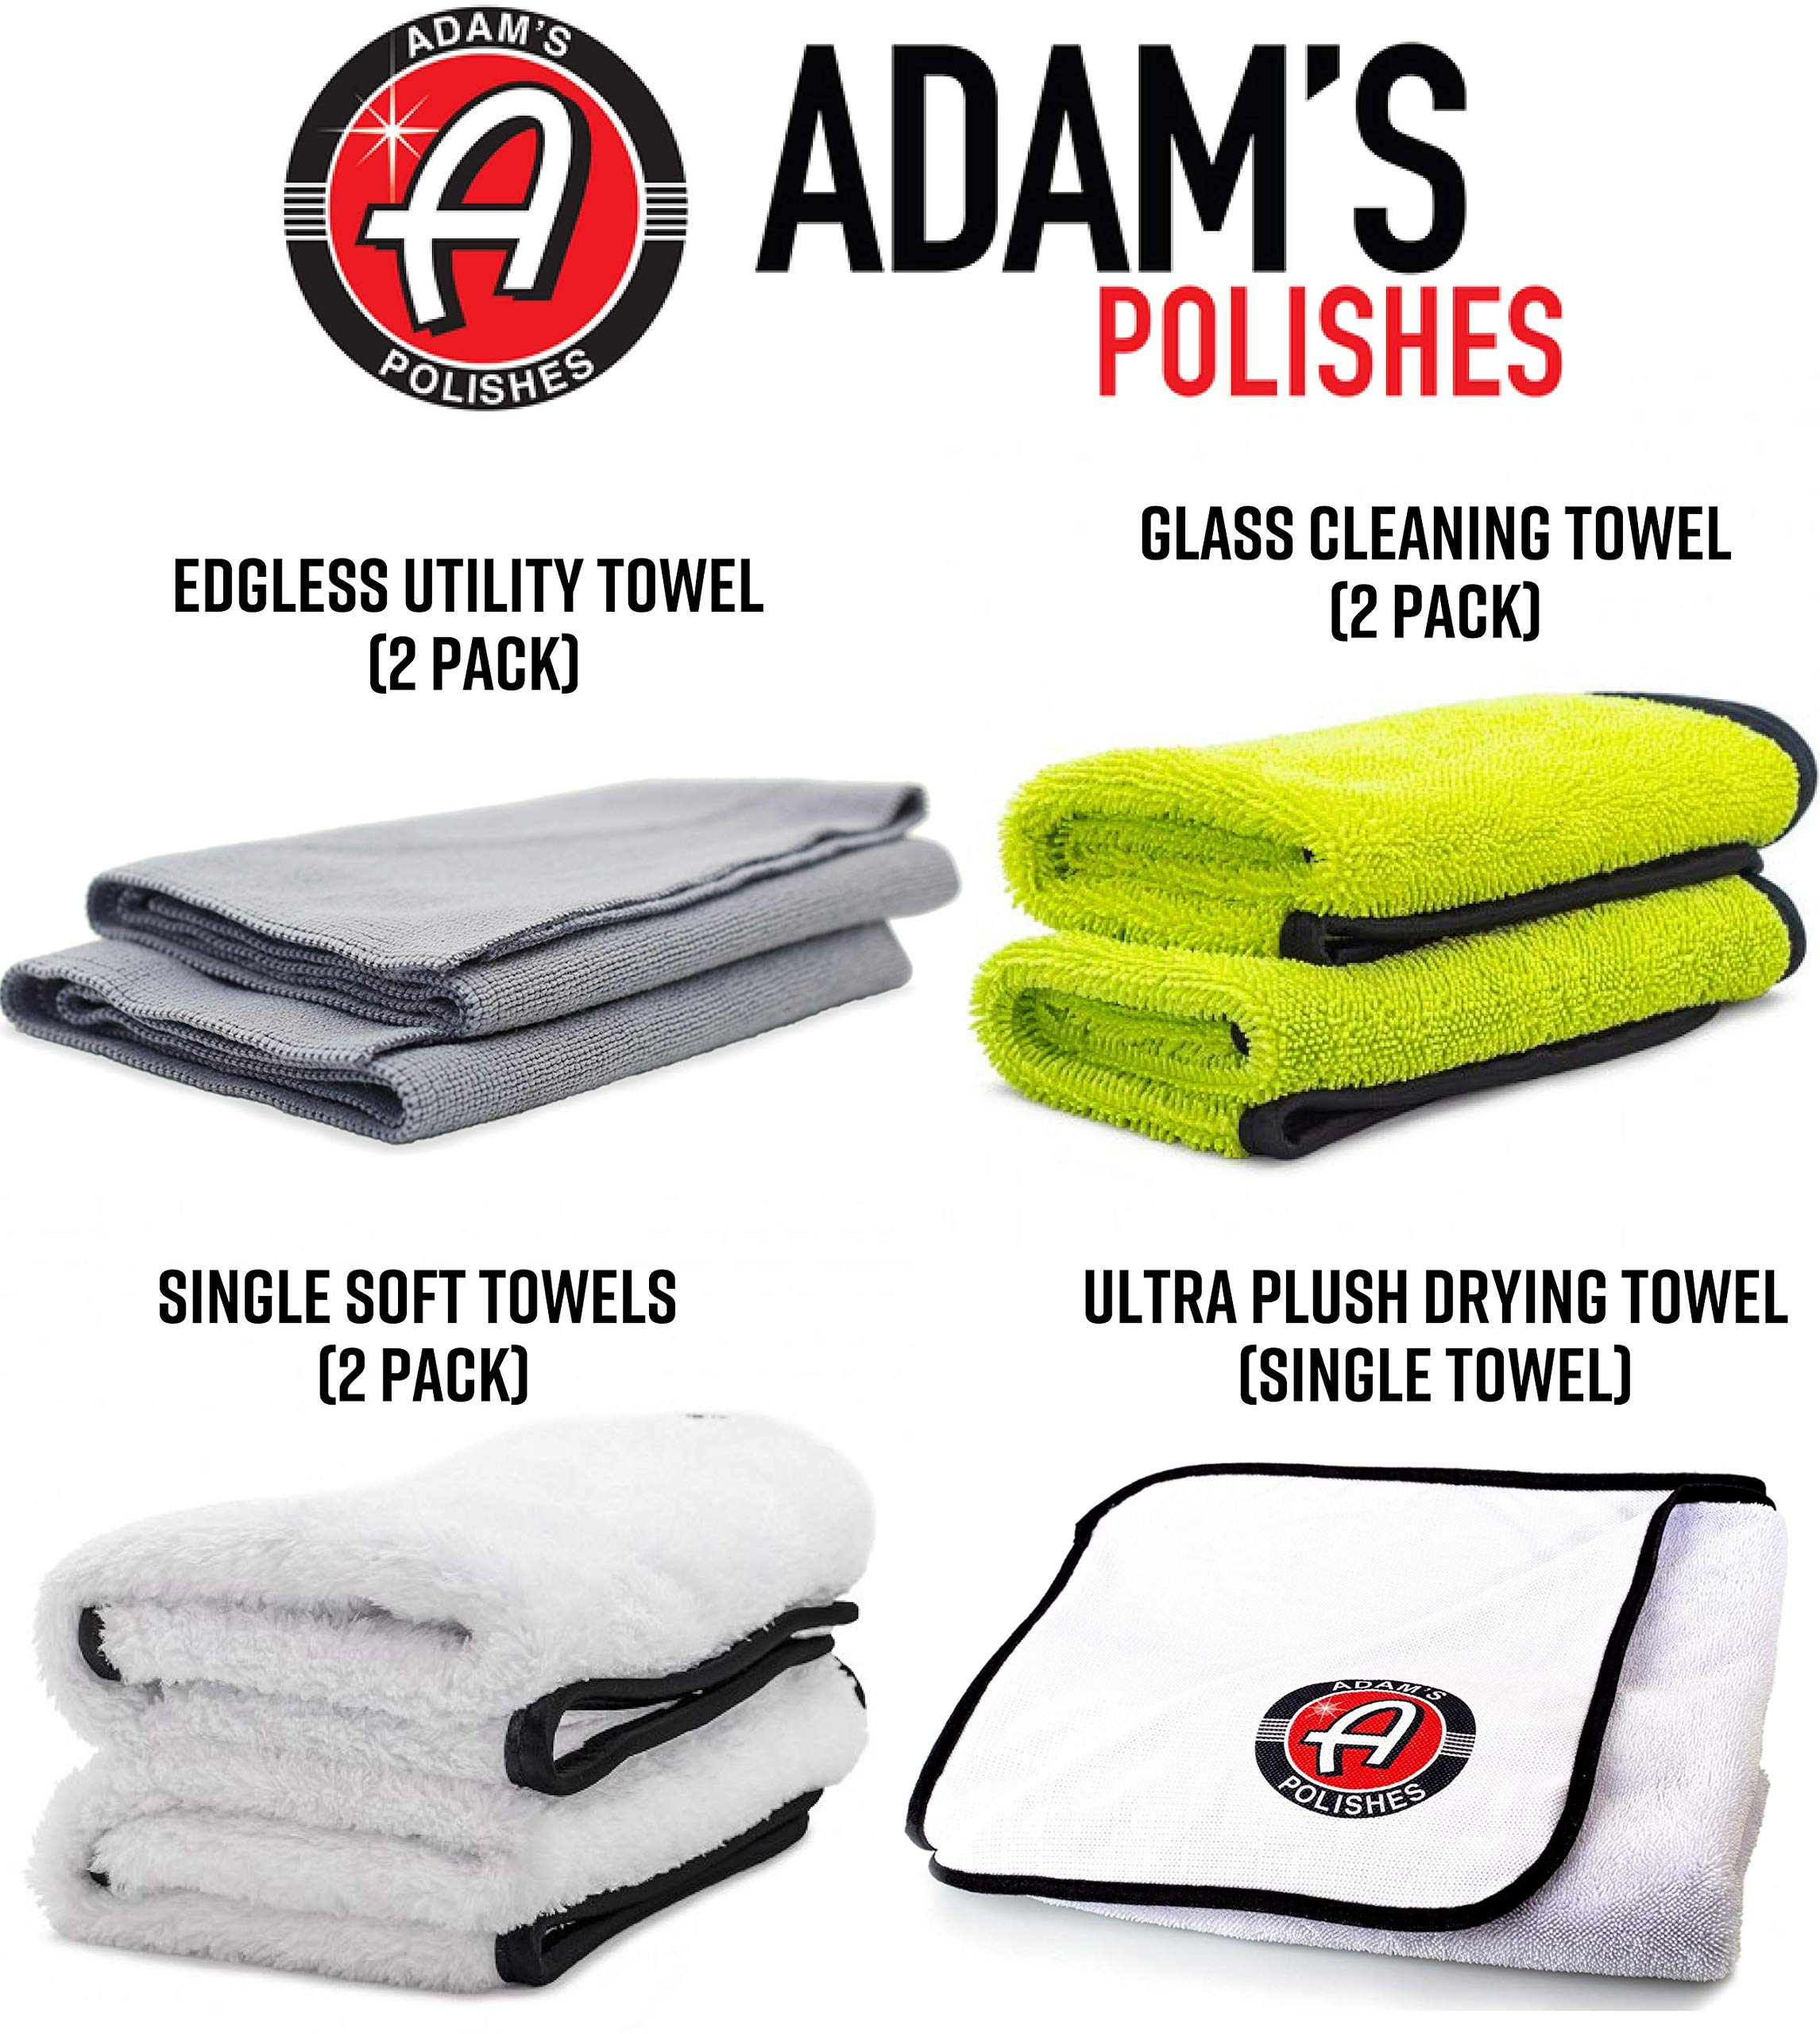 Adam's Essential Towel Bundle - The Best Collection of Car Cleaning, Washing, Drying & Detailing Microfiber Cloths - Wax, Polish, Wash & Dry Your Vehicle with Adam's Soft Car Towels by Adam's Polishes (Image #2)